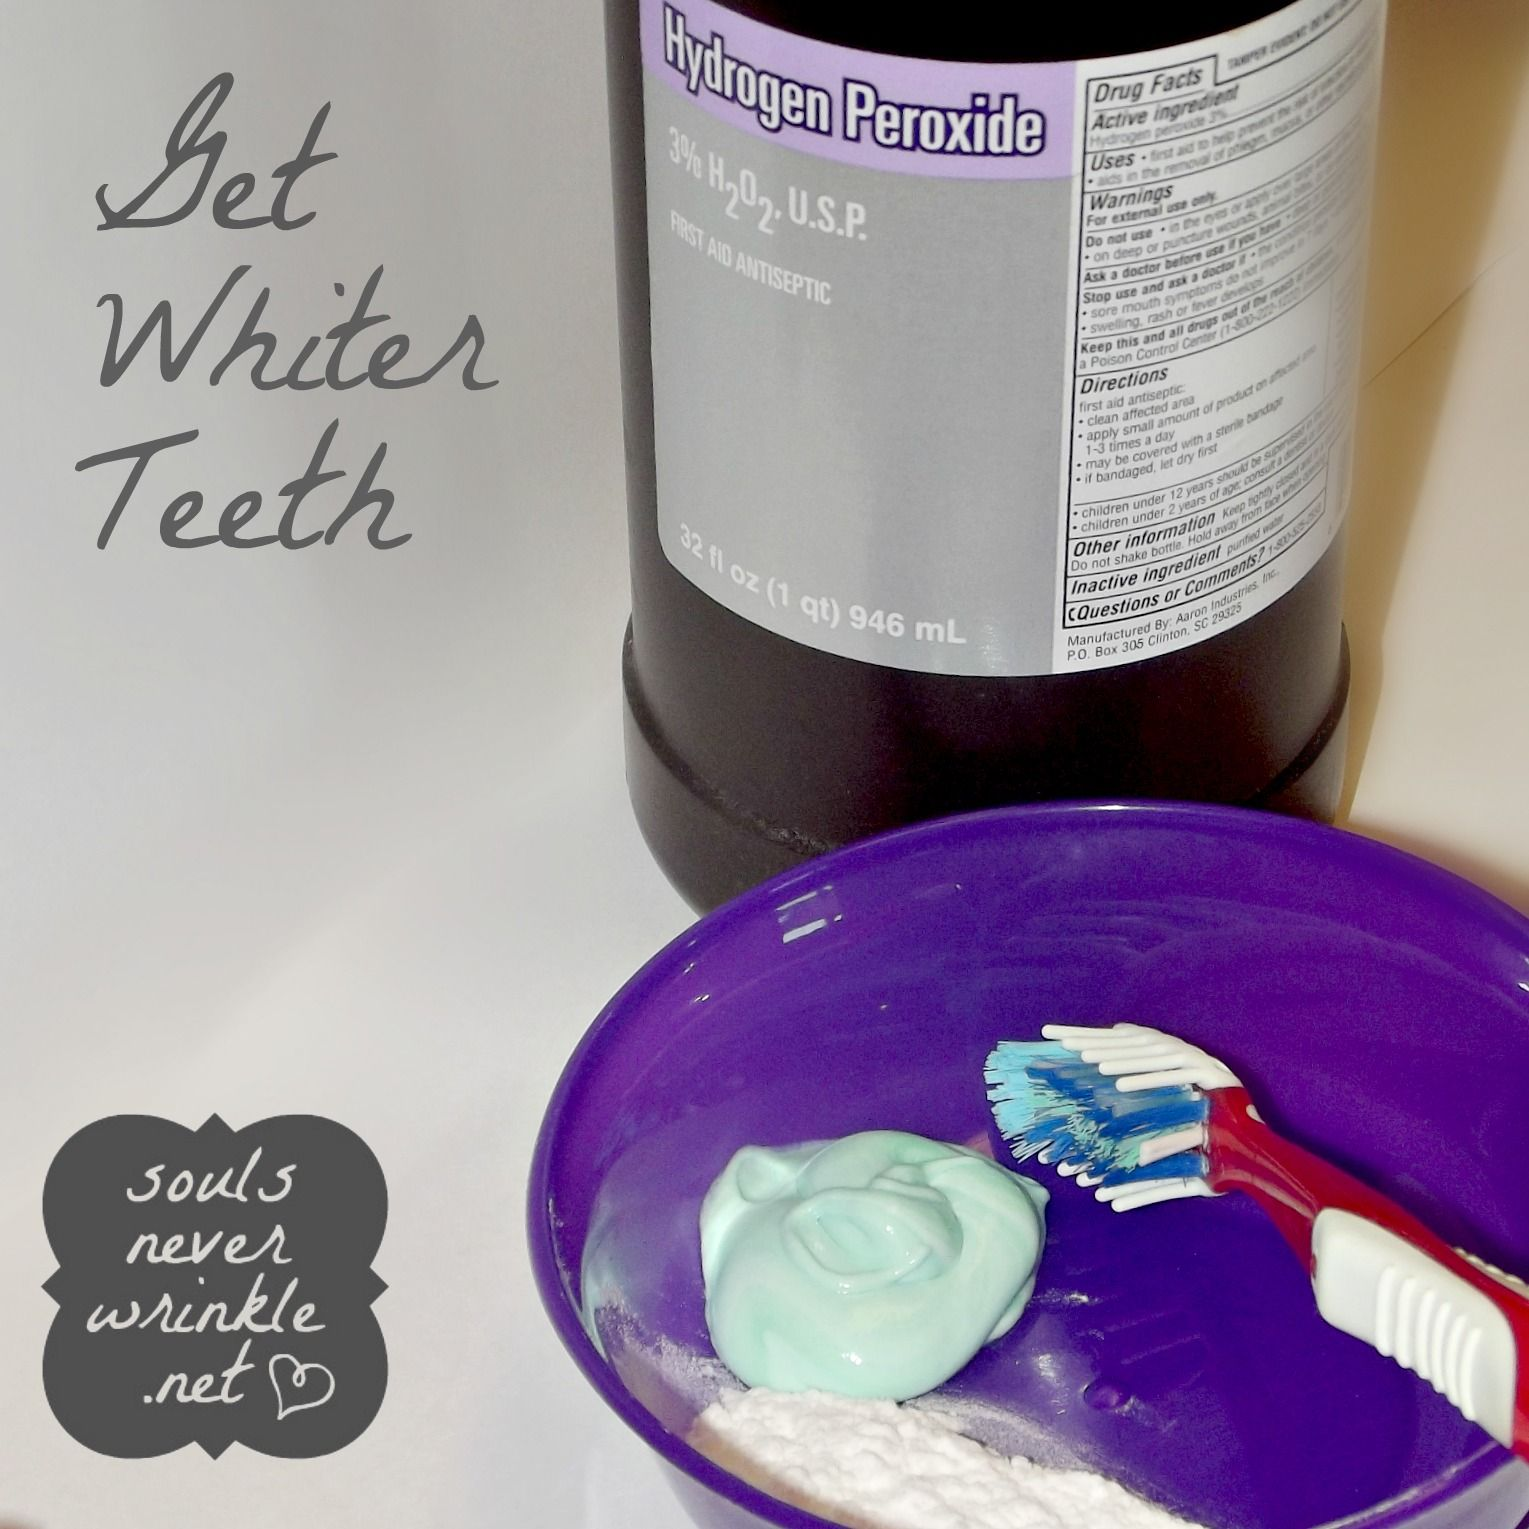 How to Get Whiter Teeth- Use a little toothpaste, mix in one teaspoon baking soda plus one teaspoon of hydrogen peroxide, and half a teaspoon water. Thoroughly mix then brush your teeth for two minutes. Remember to do it once a week until you have reached the results you want. Once your teeth are good and white, limit yourself to using the whitening treatment once every month or two.